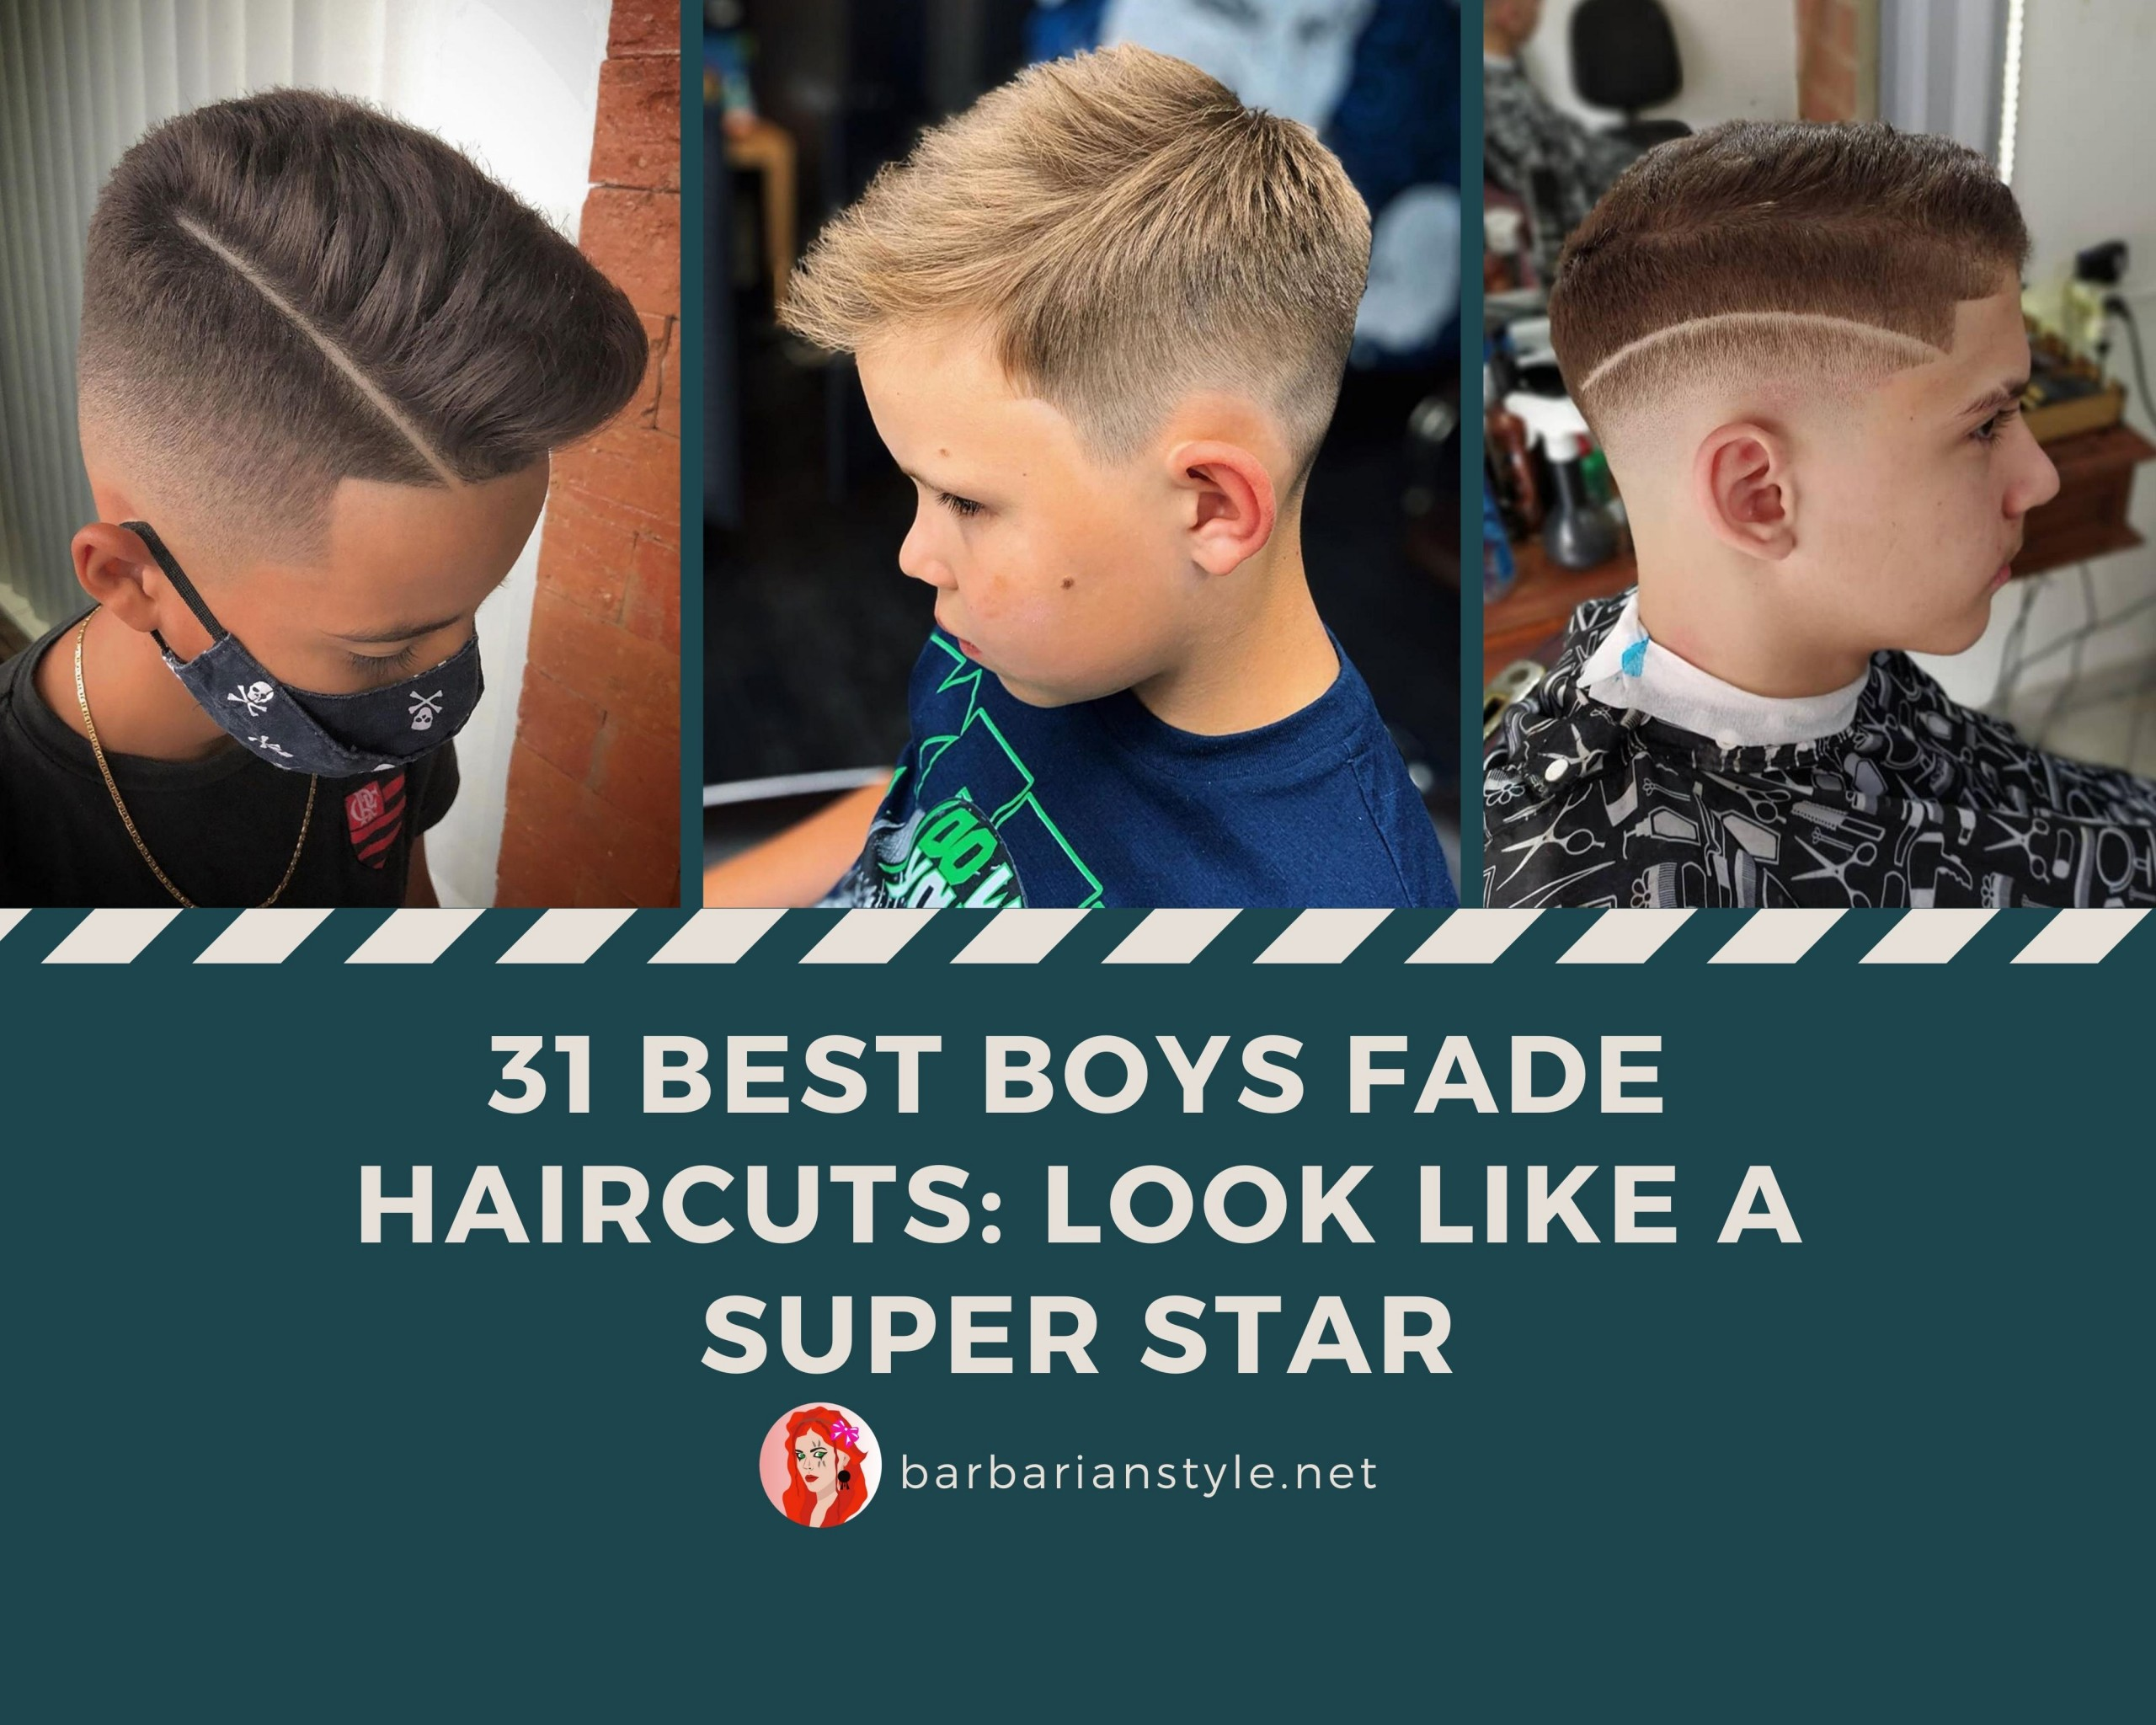 boys fade best haircuts.